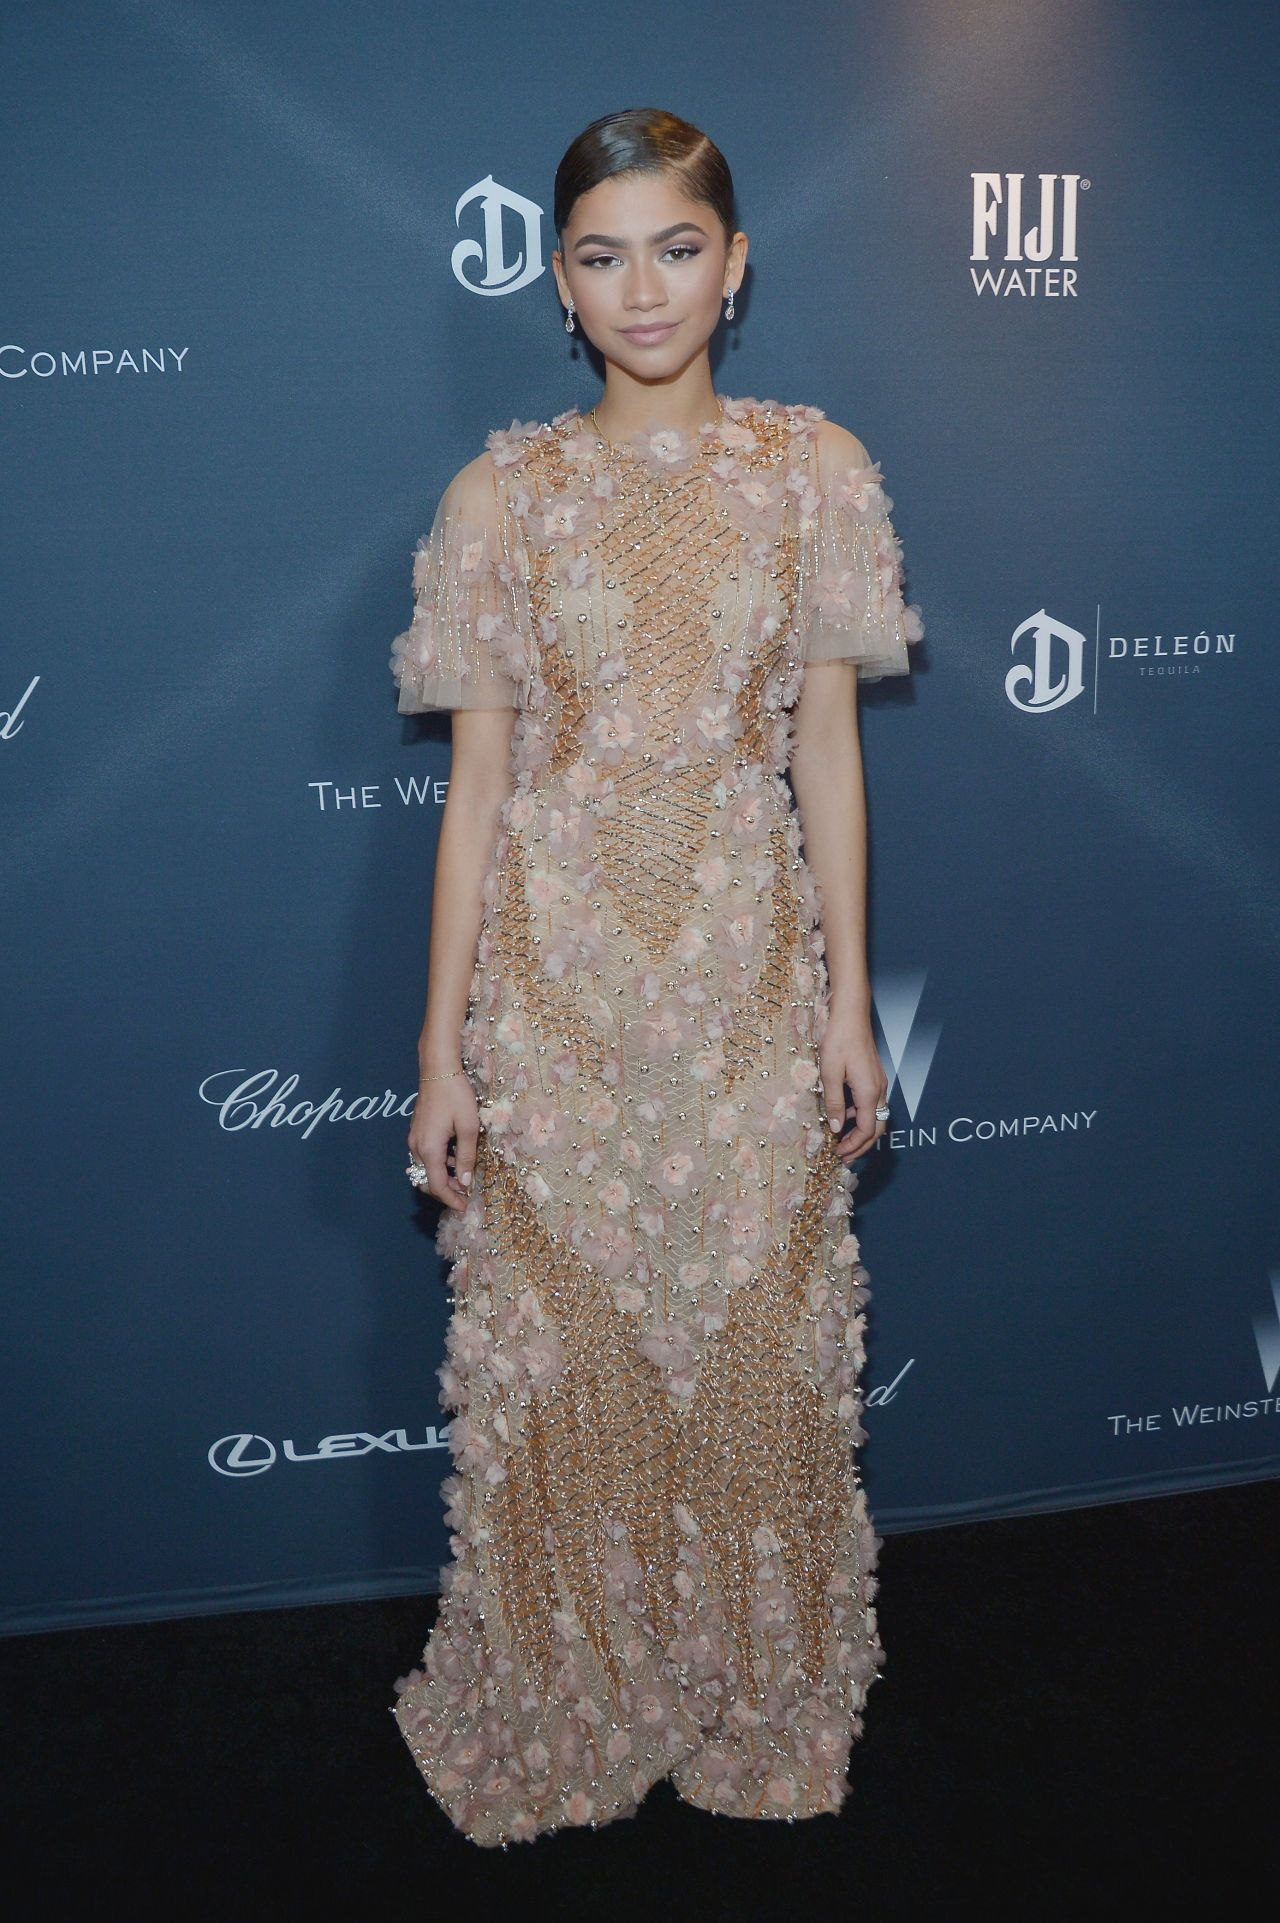 zendaya-the-weinstein-company-s-pre-oscar-dinner-in-beverly-hills-ca-2-27-2016-2